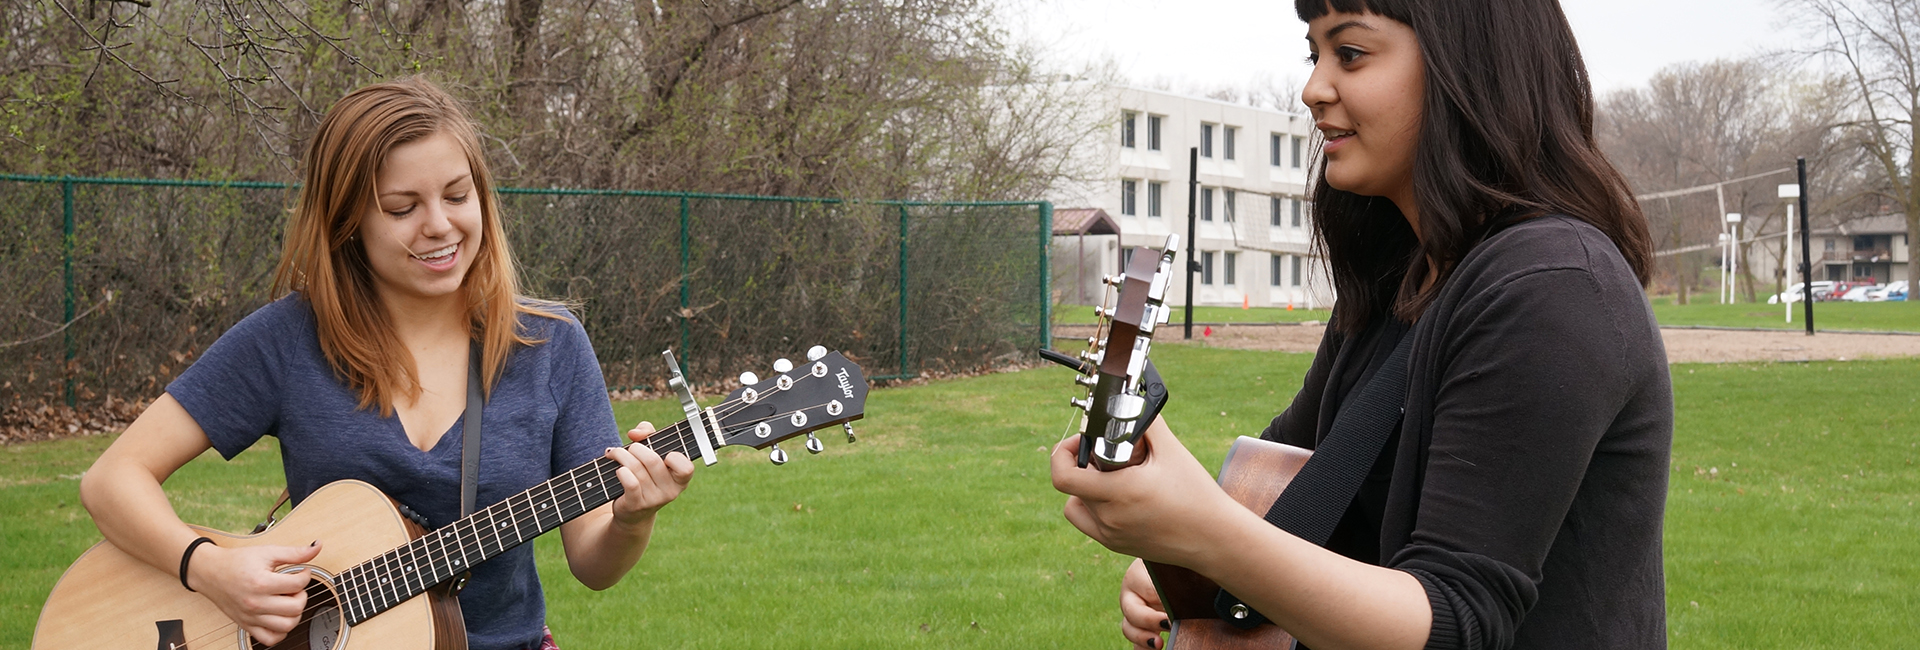 Two girls playing guitars